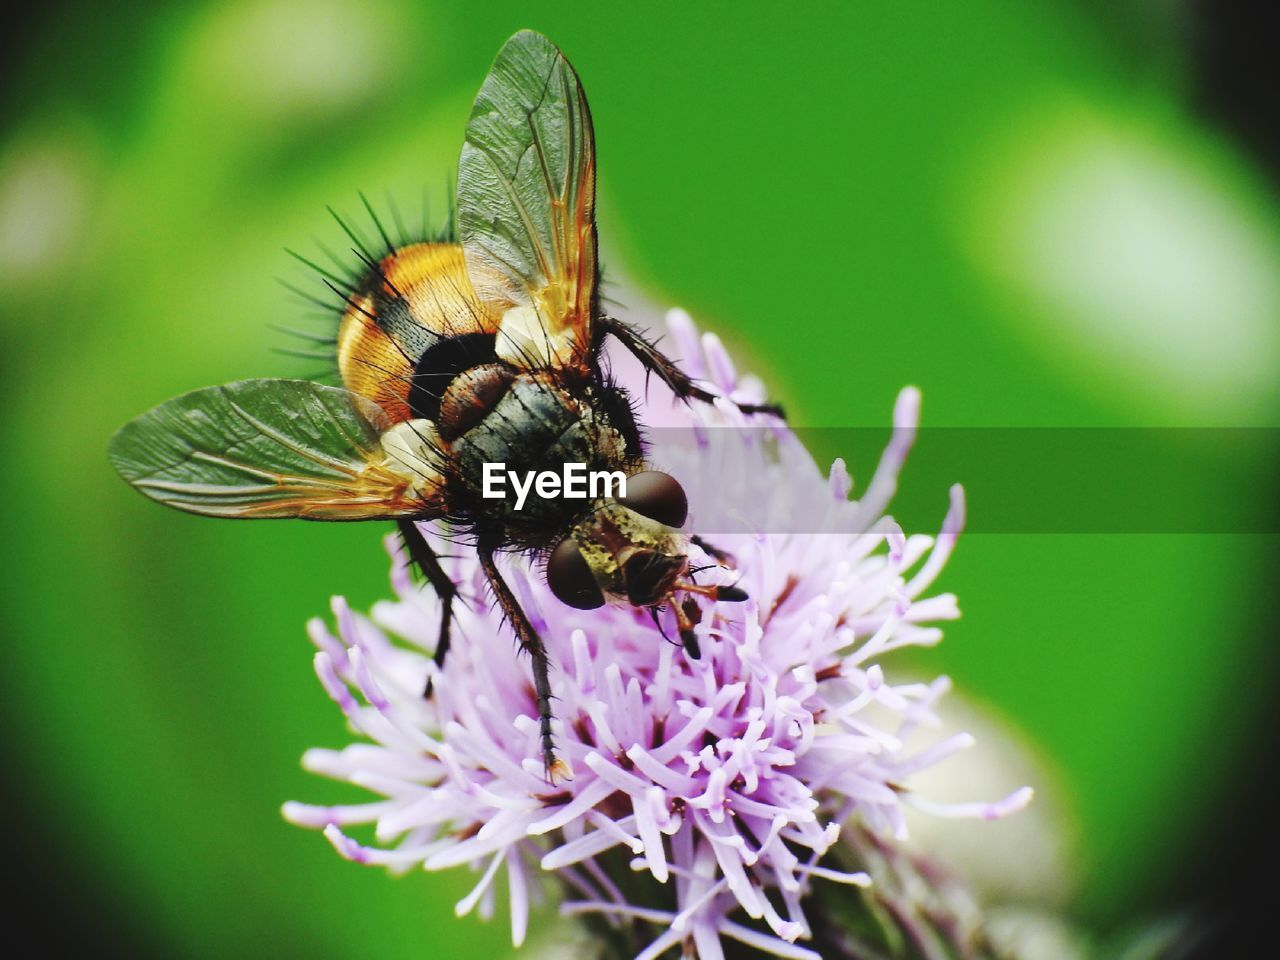 invertebrate, insect, flower, flowering plant, animal, animal themes, animal wildlife, one animal, animals in the wild, plant, fragility, beauty in nature, vulnerability, close-up, selective focus, growth, petal, day, flower head, animal wing, no people, pollination, outdoors, purple, butterfly - insect